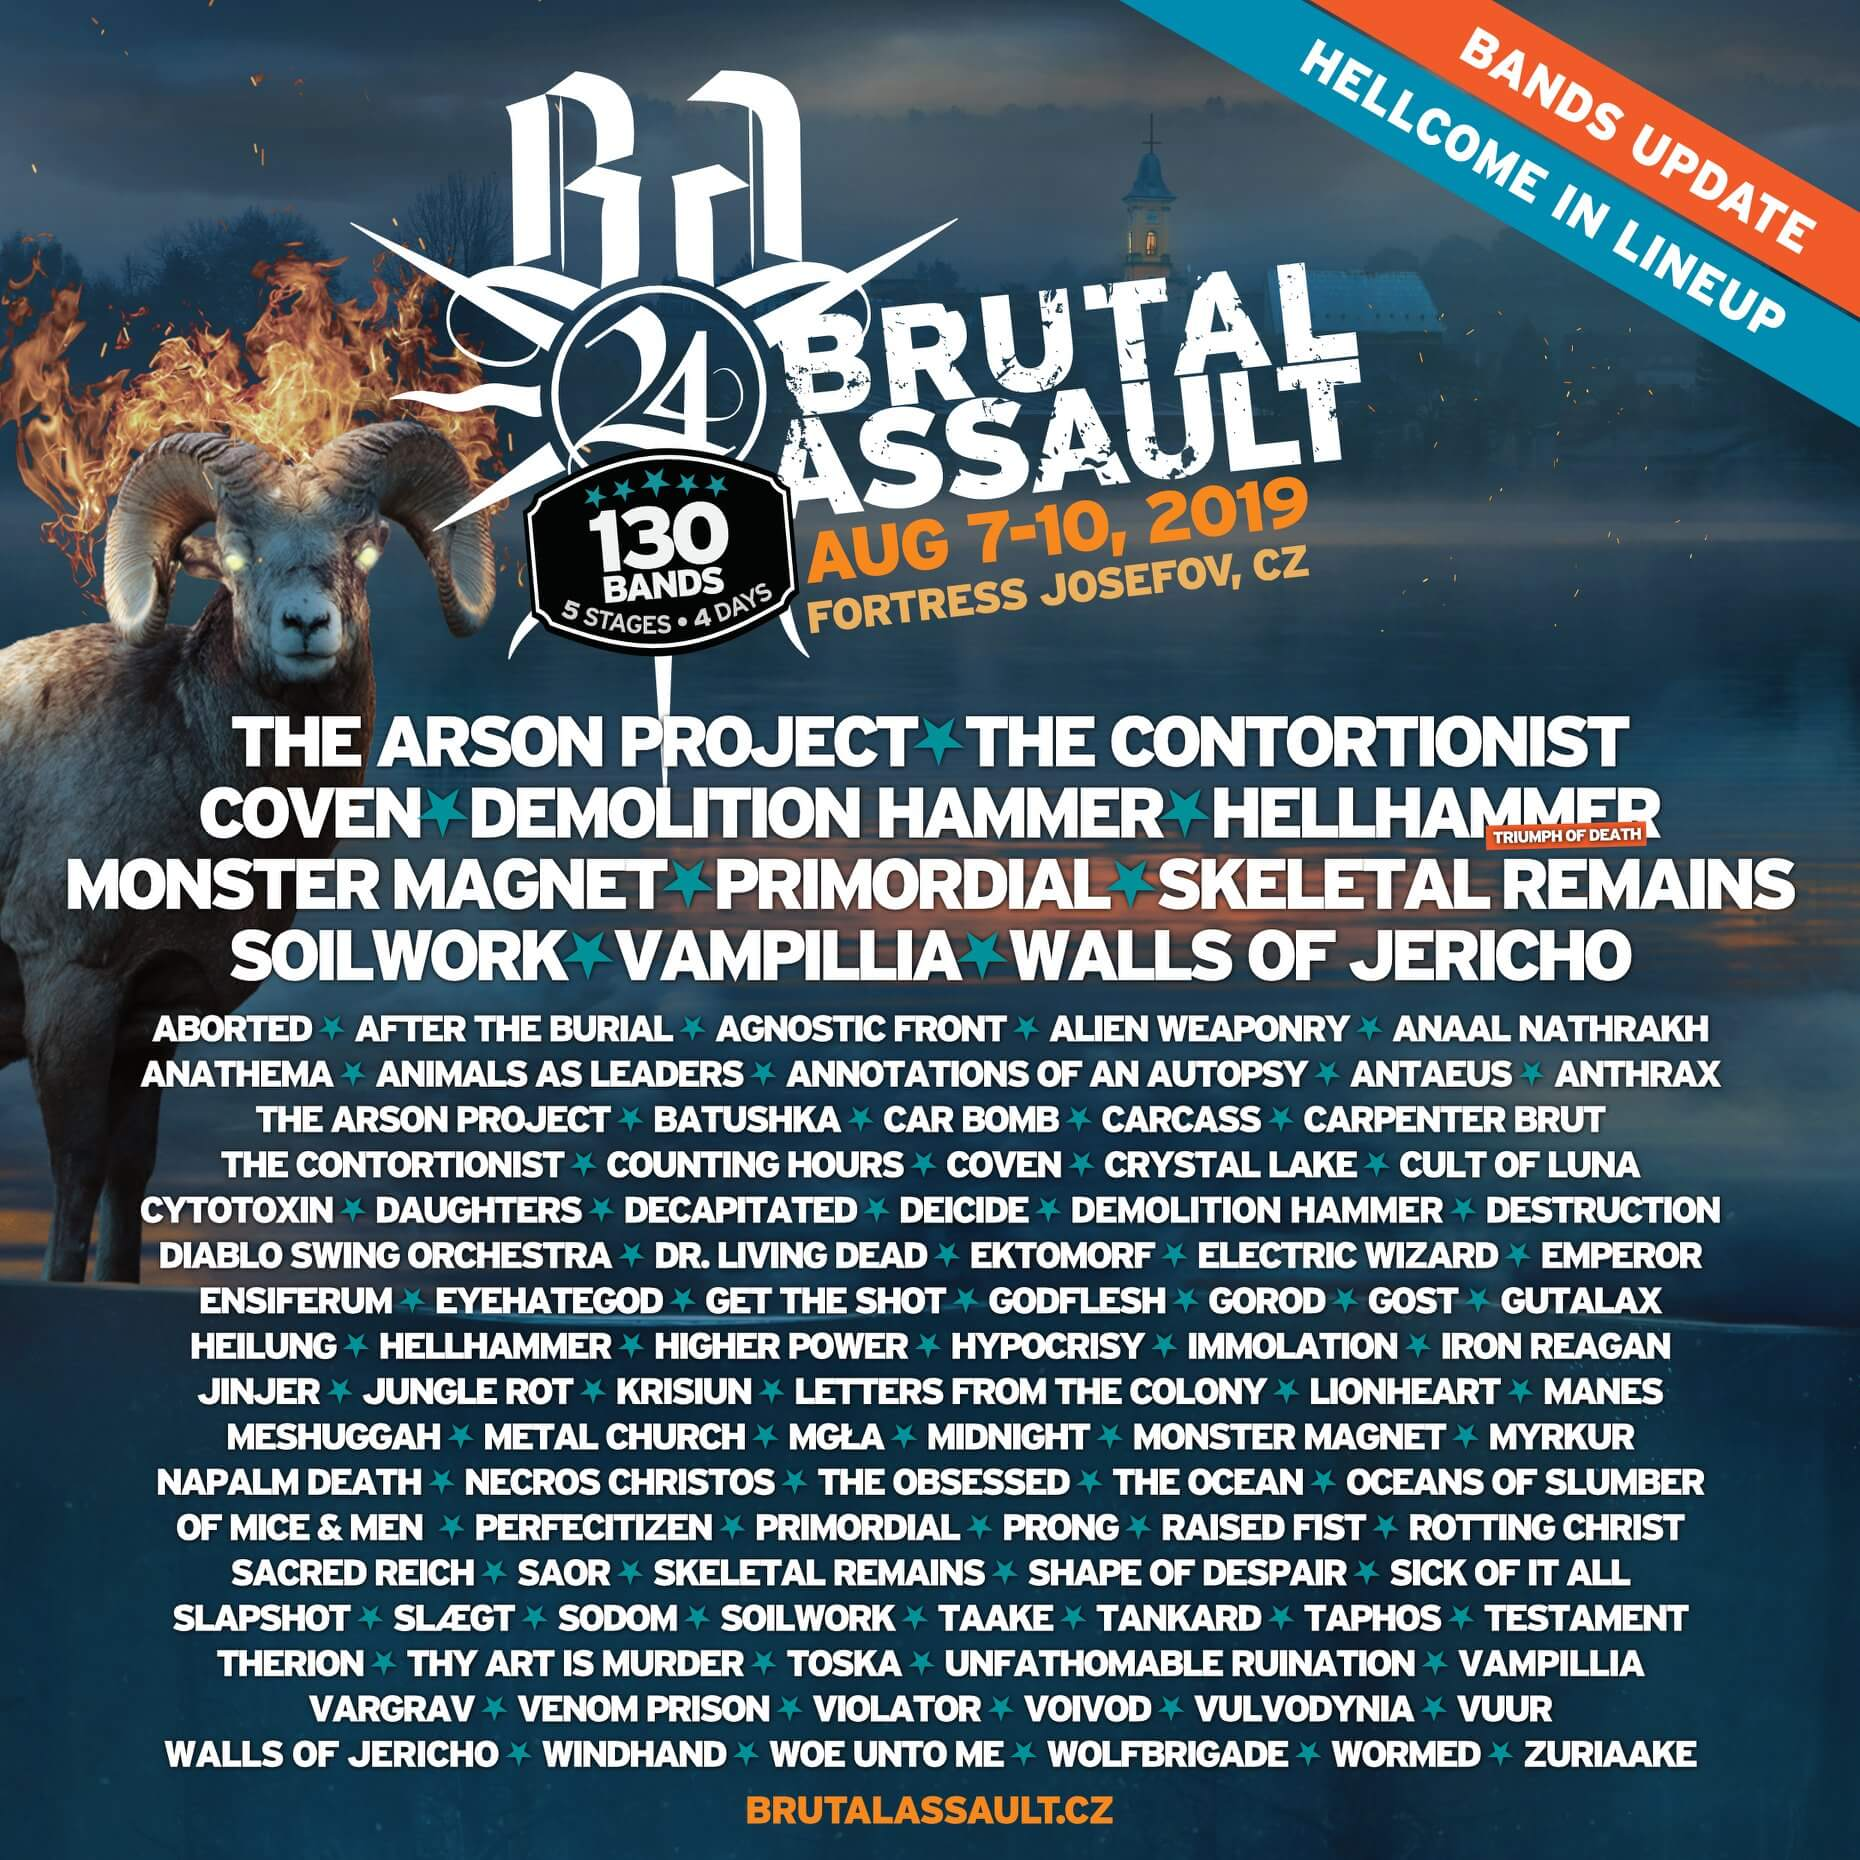 brutal assault - 2019 - upd04feb